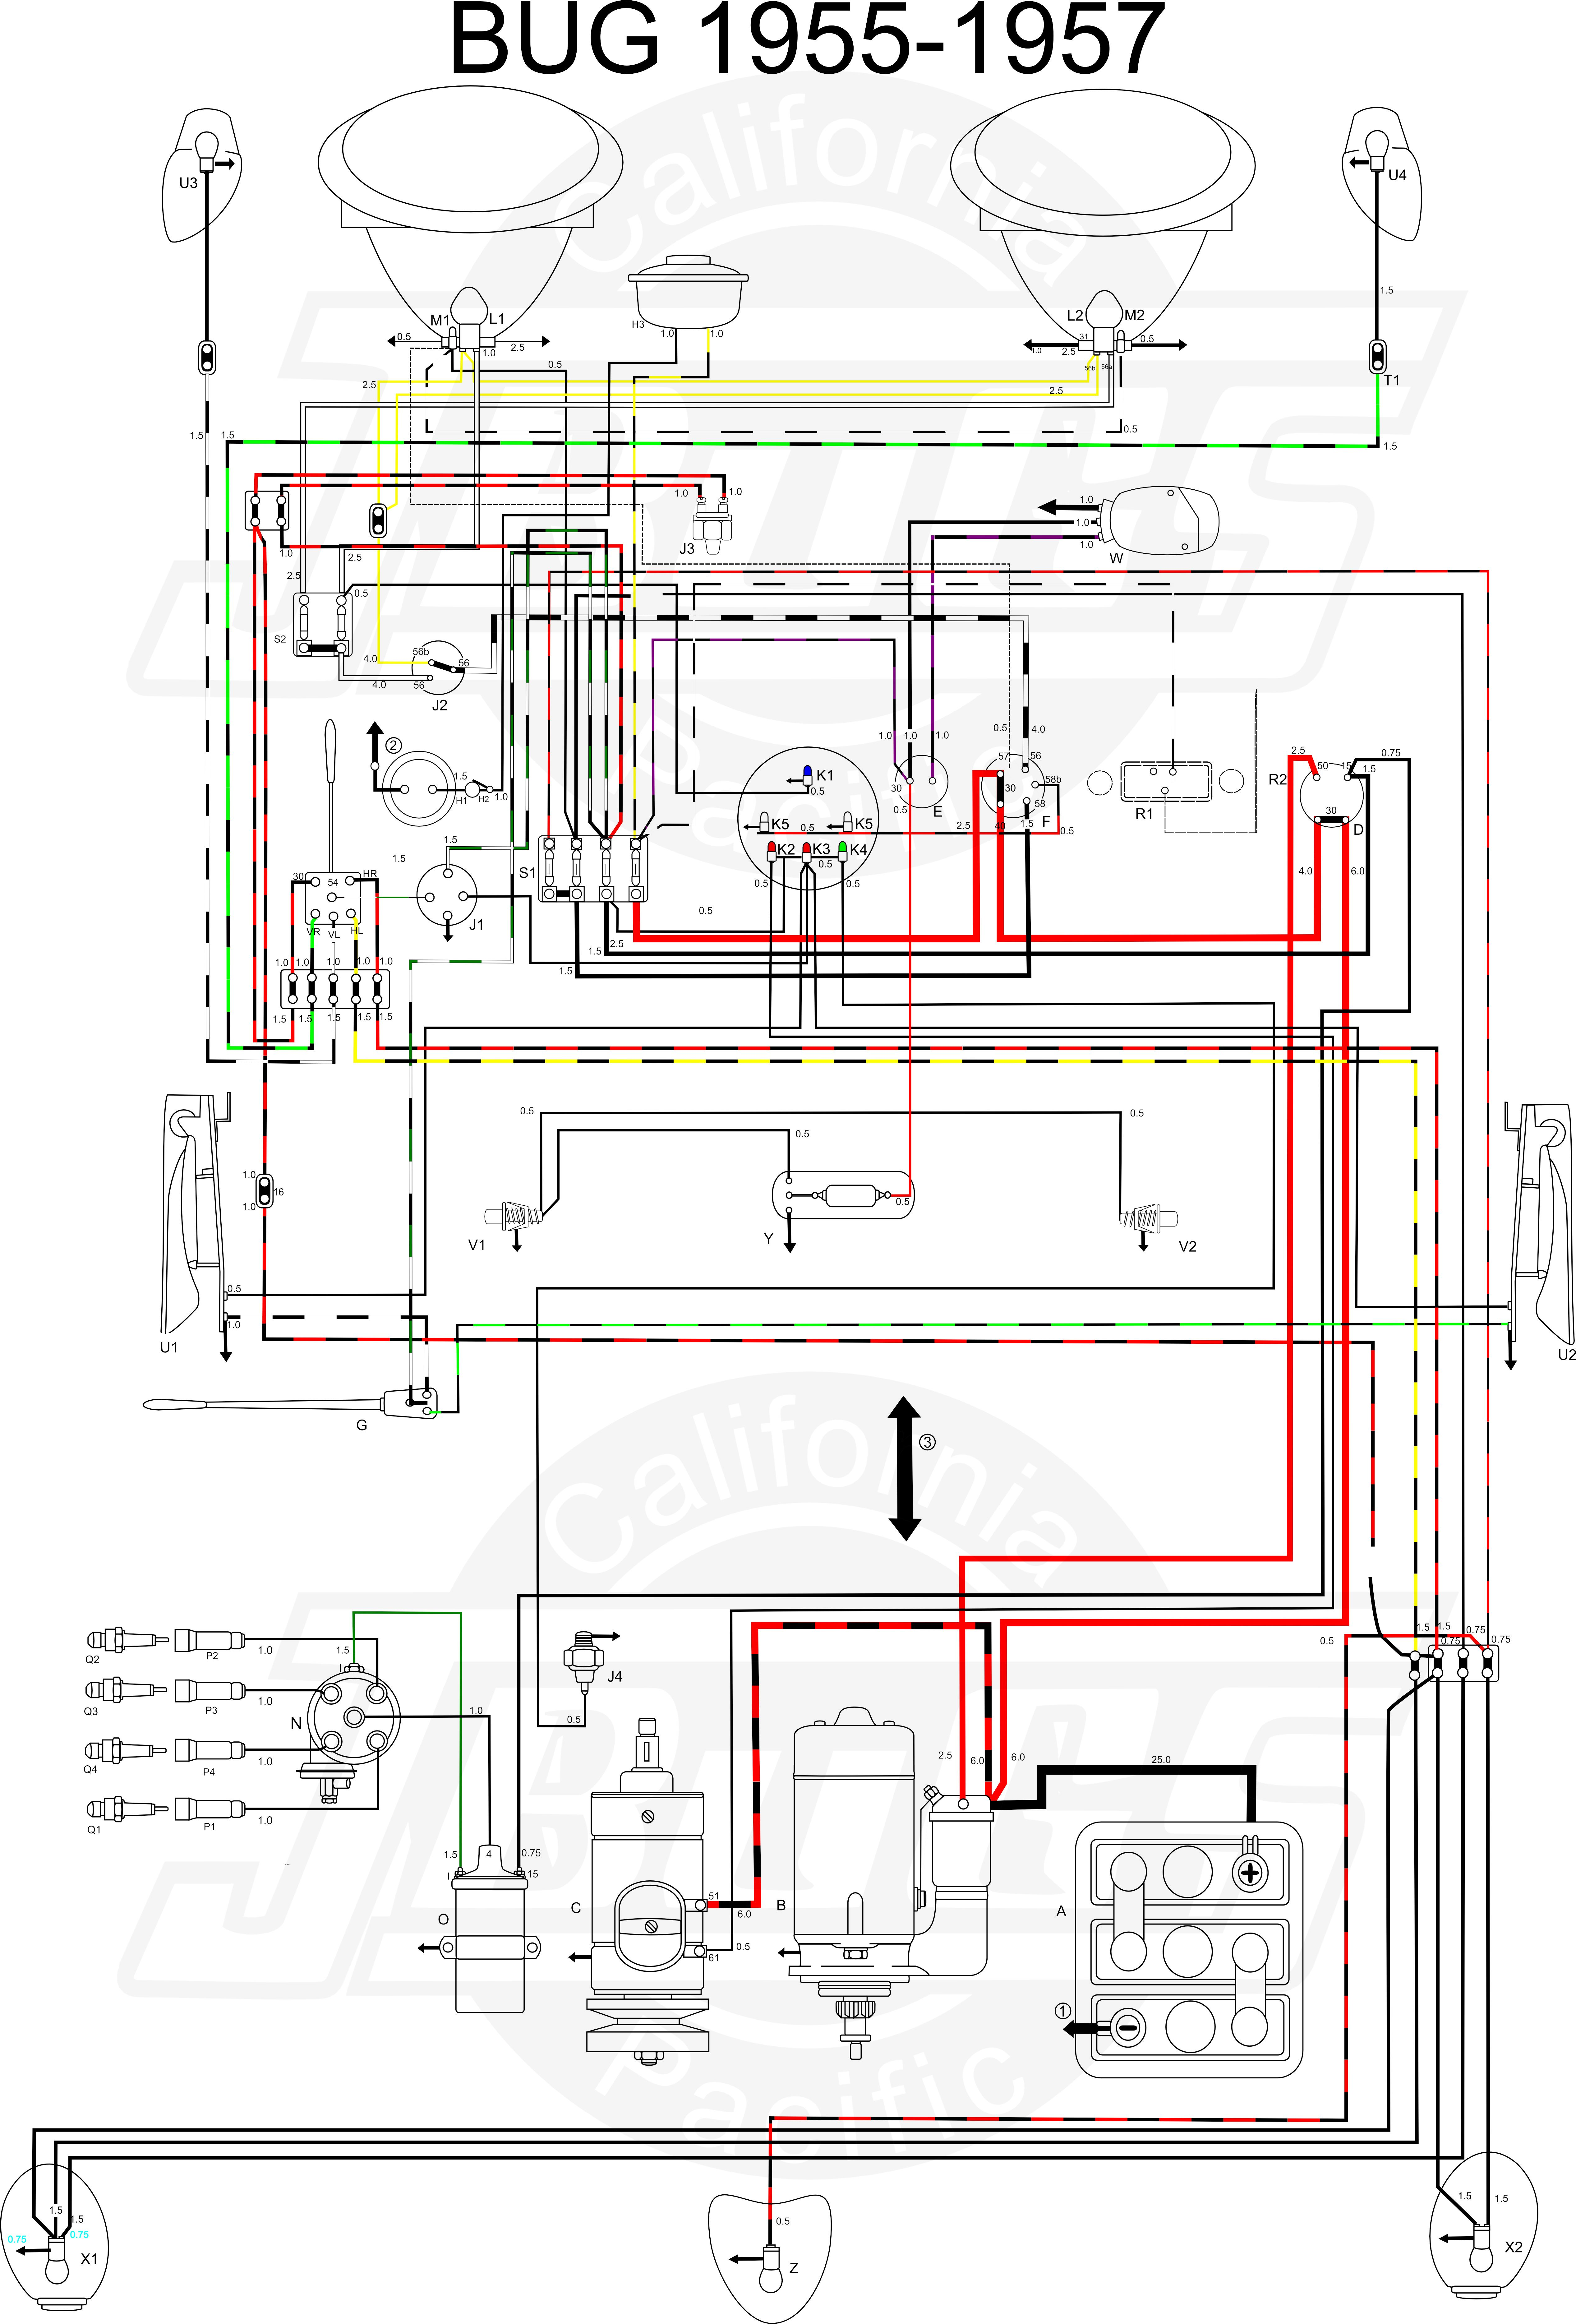 small resolution of vw manx wiring diagrams wiring diagram for youmanx wiring diagram basic 15